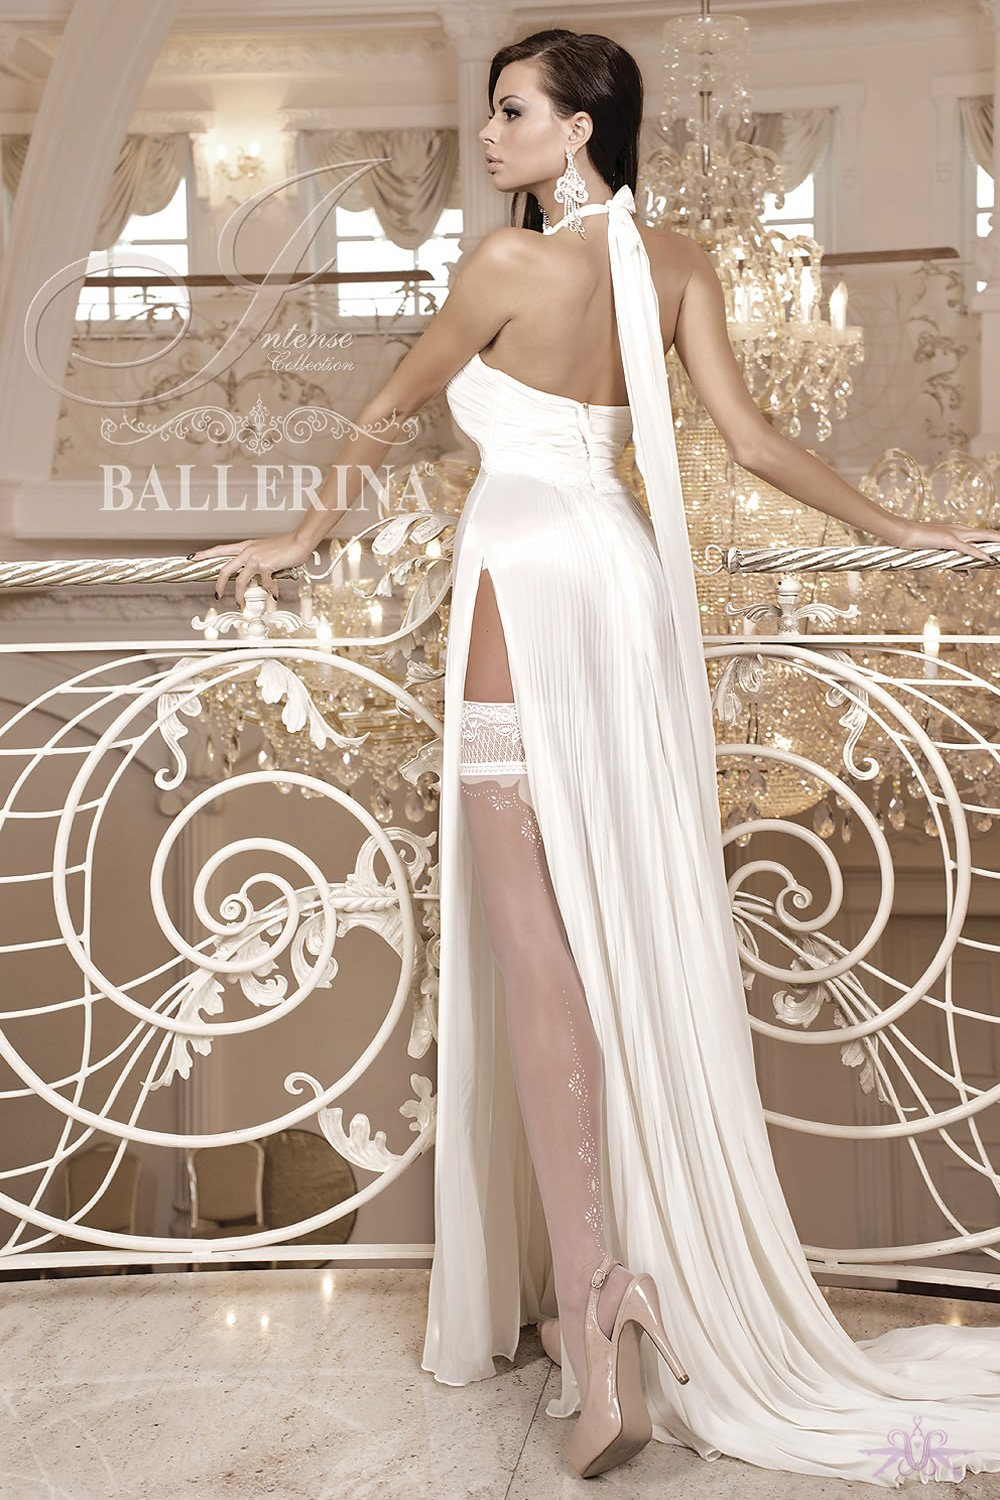 Ballerina Back Seam Bridal Hold Ups - The Hosiery Box